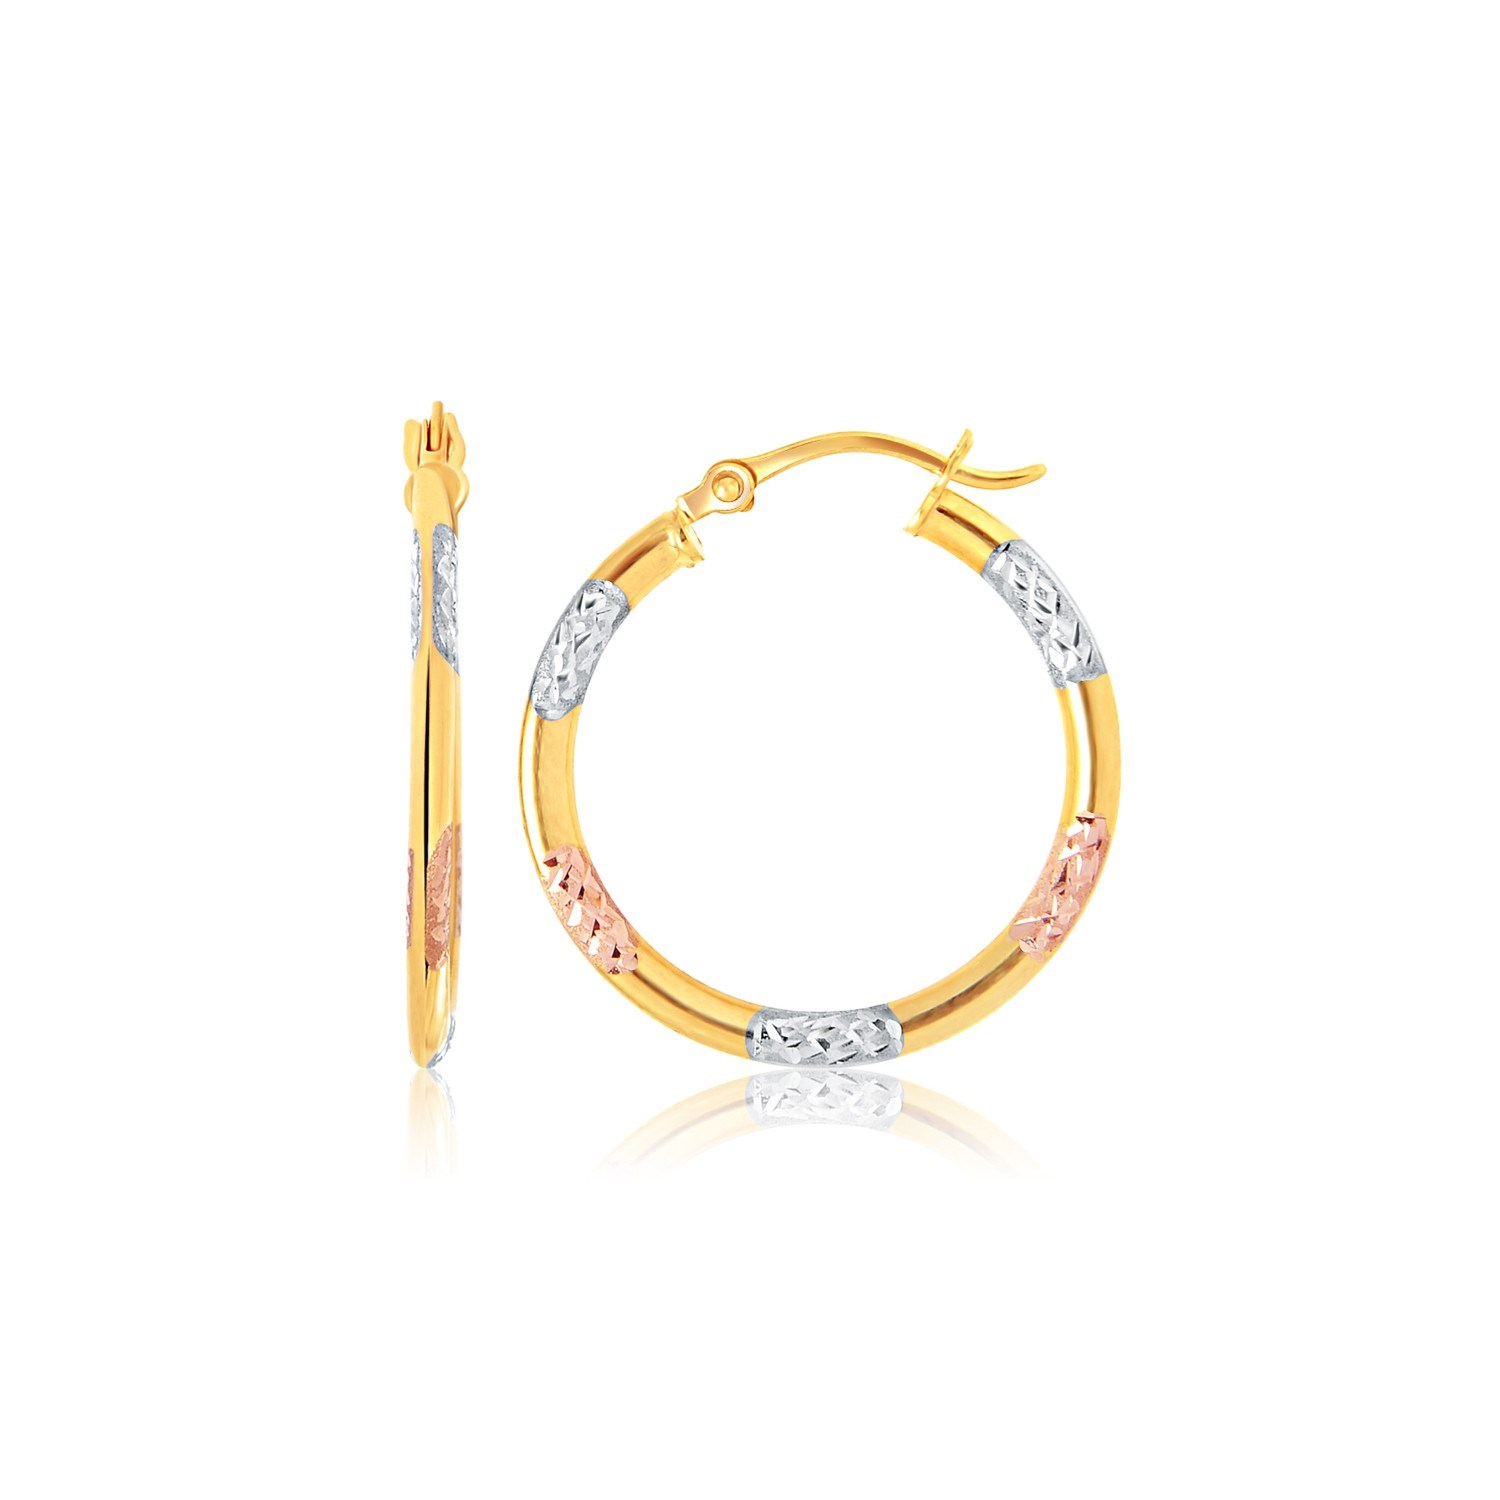 10K Tri-Color Gold Classic Hoop Earrings with Diamond Cut Detail